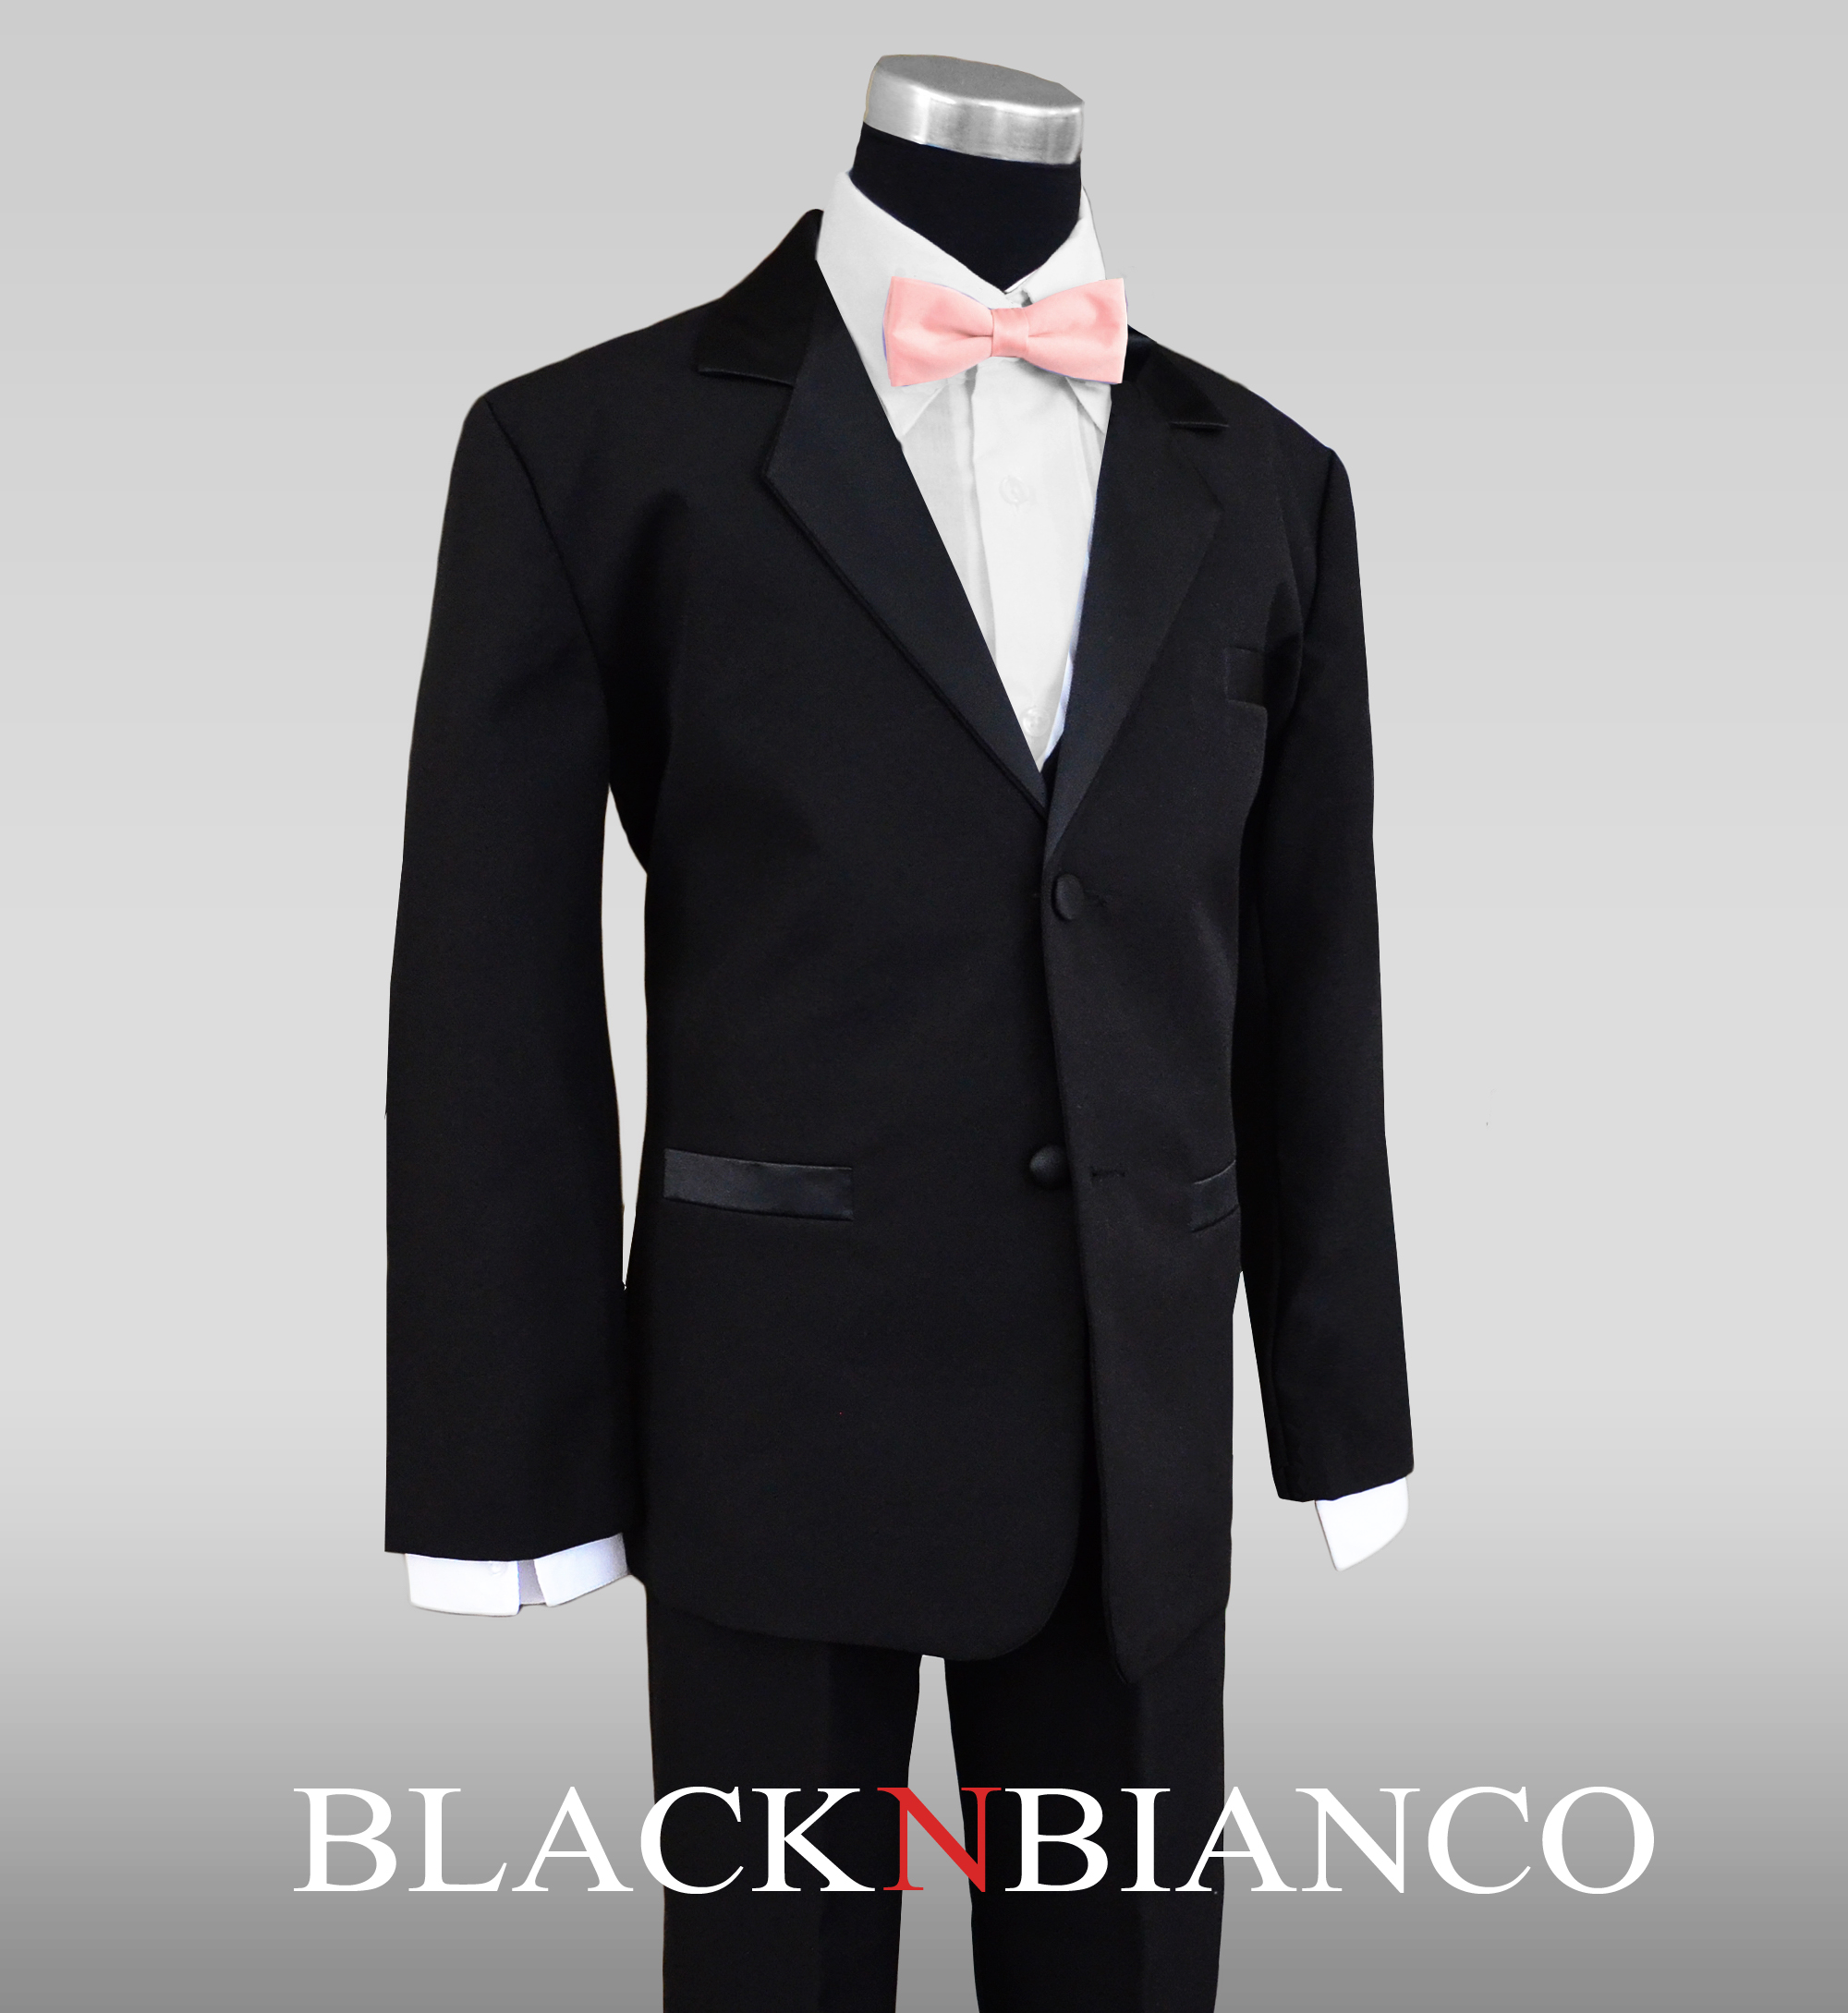 Boys Tuxedo in Black with a Light Pink and Black Bow Tie